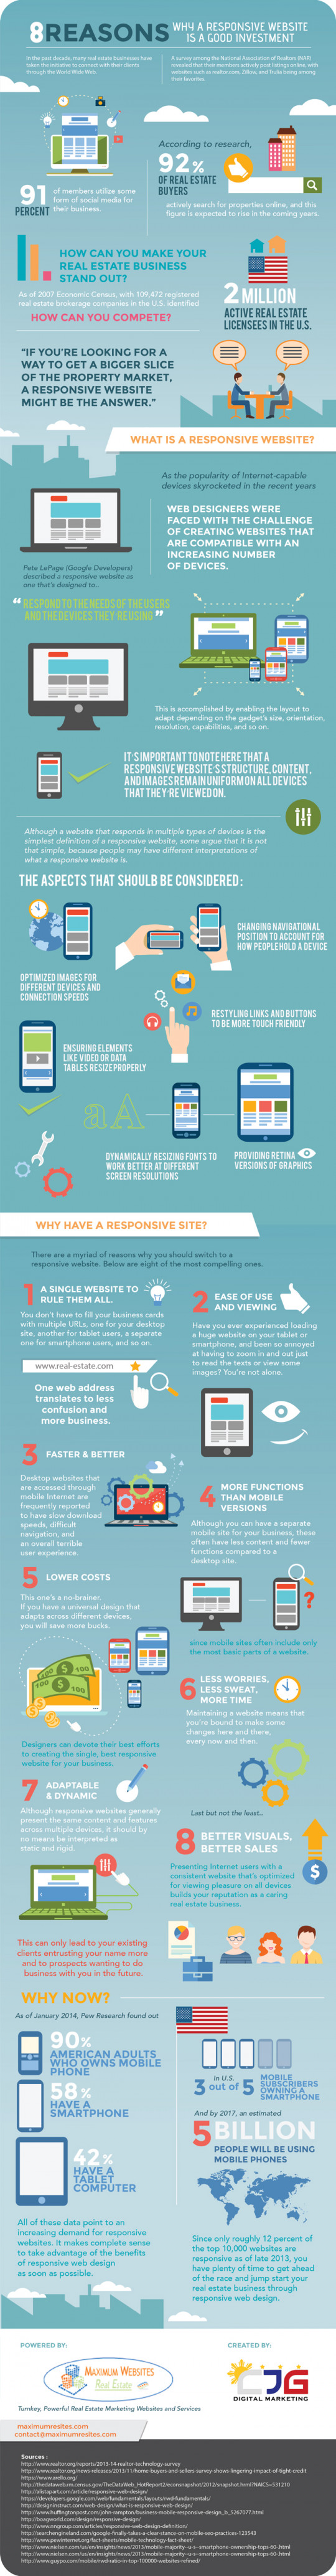 8 Reasons Why a Responsive Website Is a Good Investment?